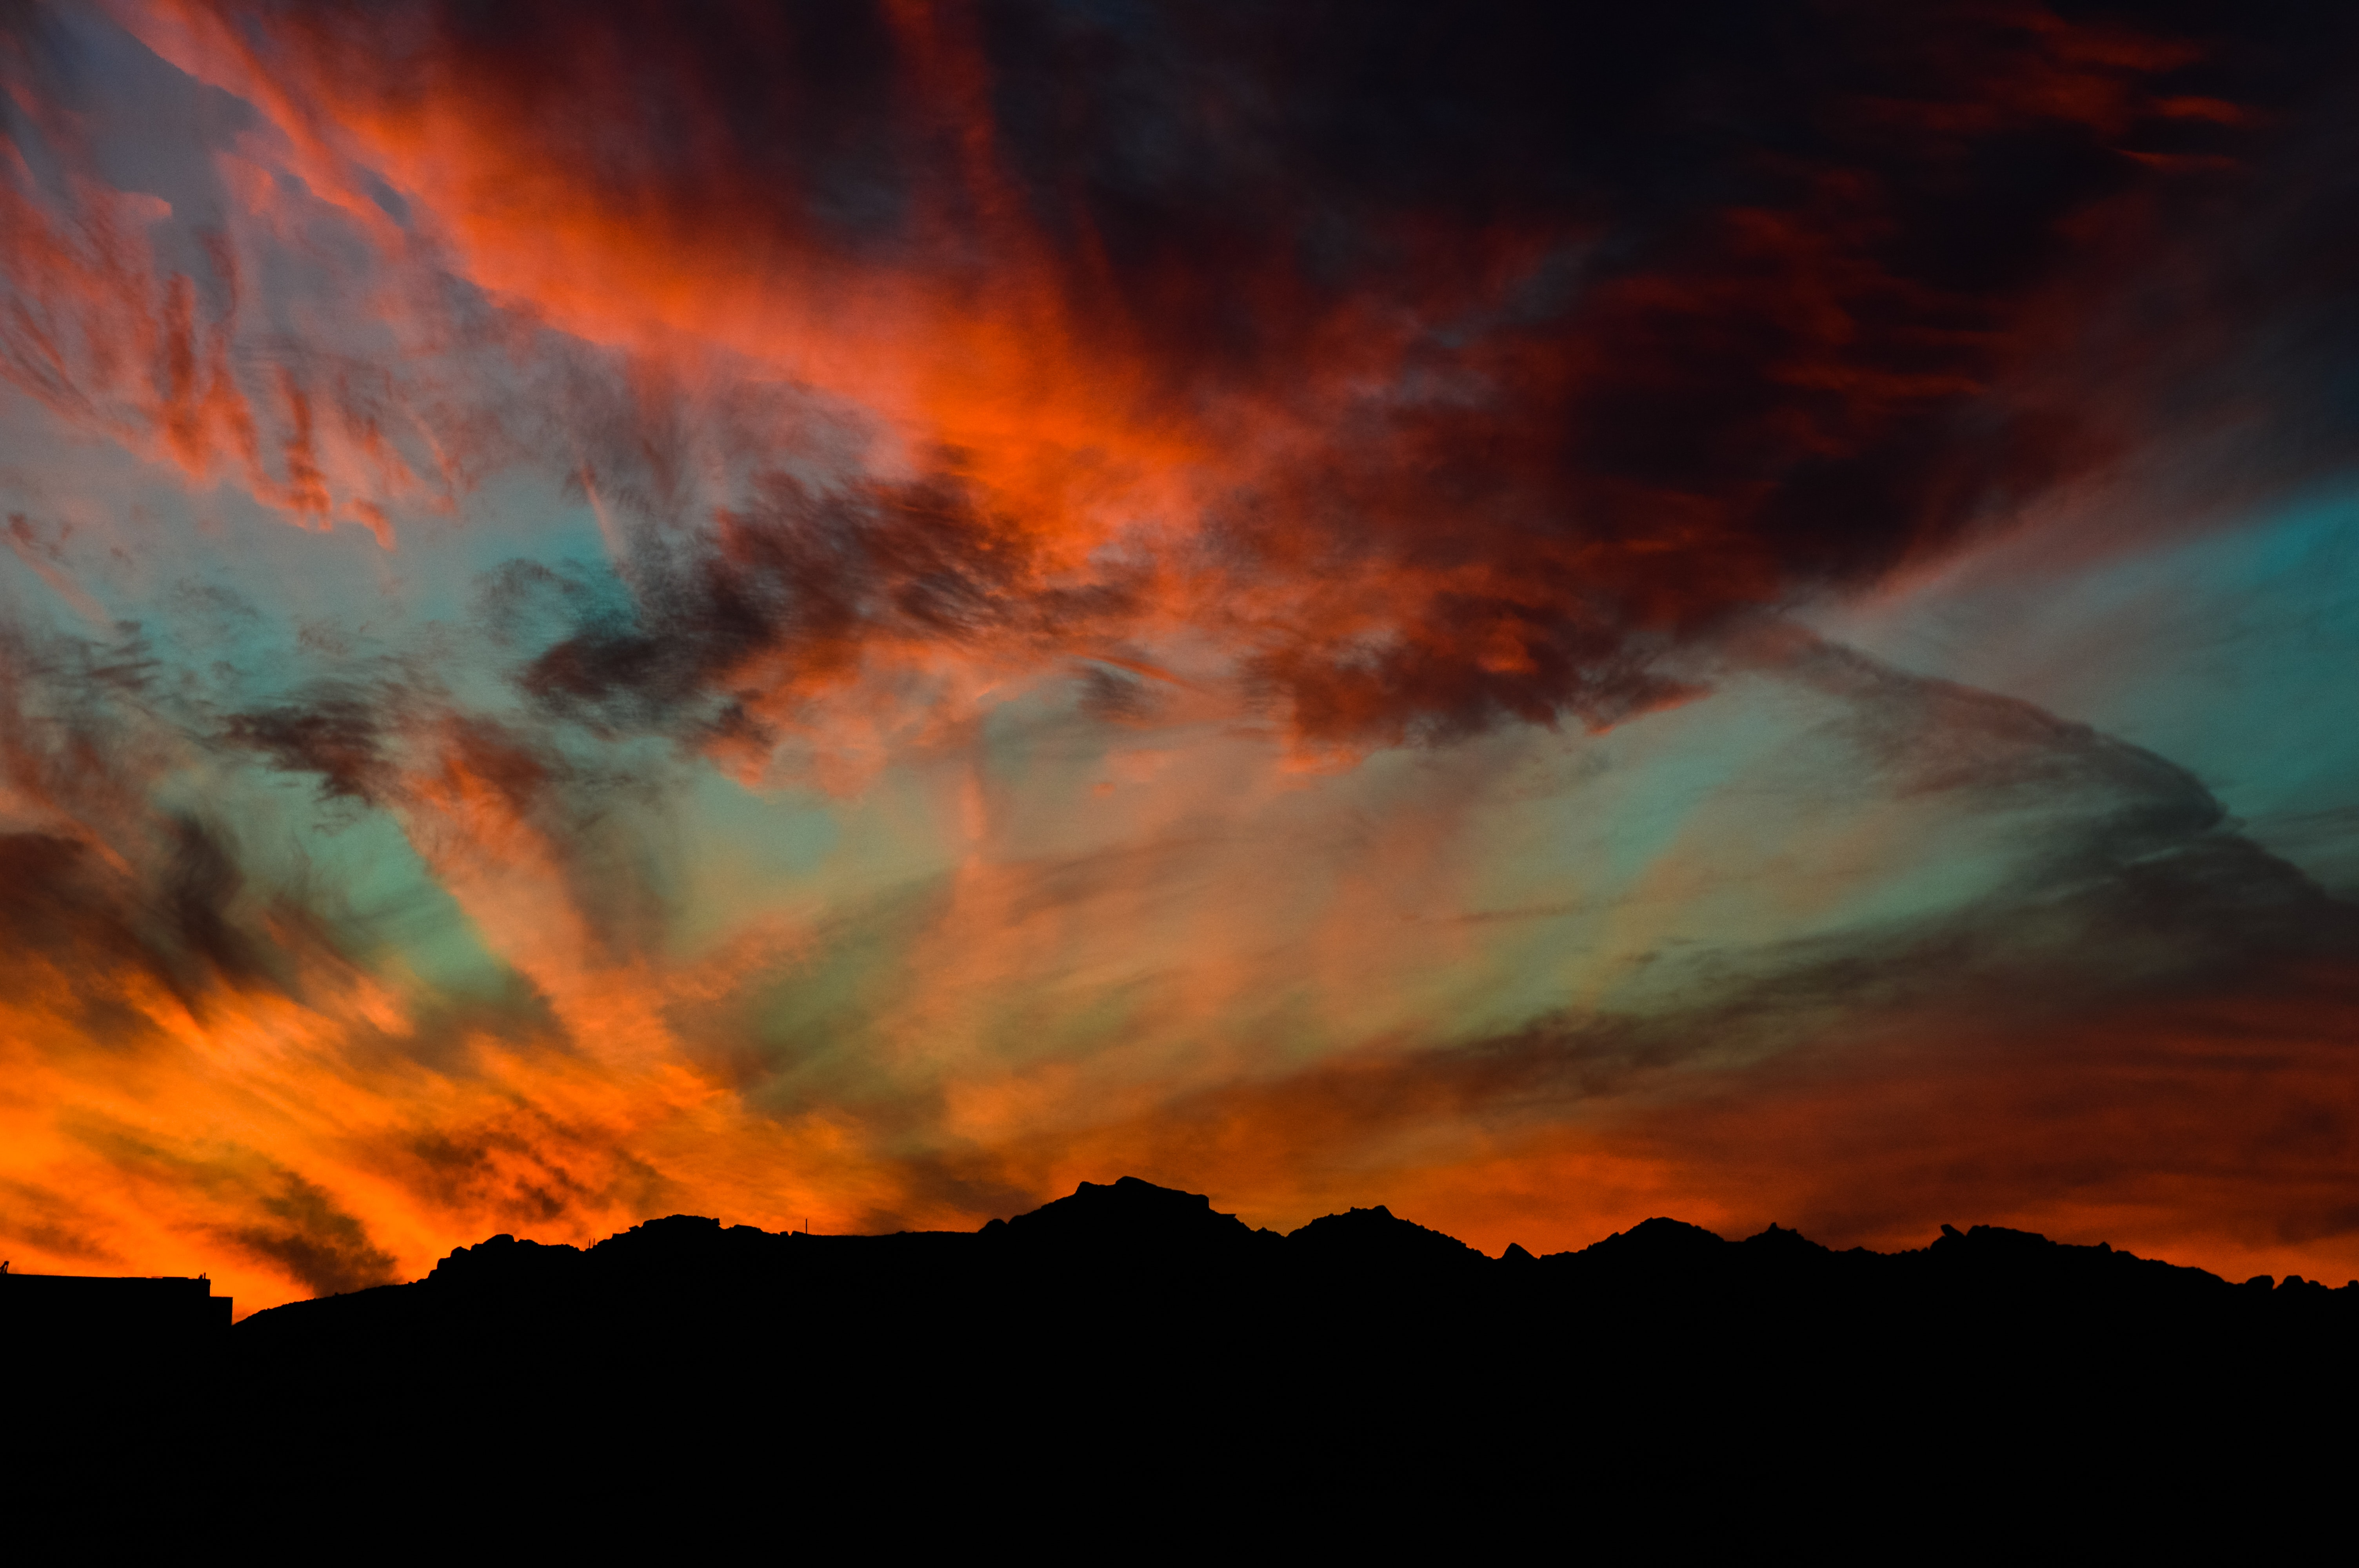 Free Photo Green Skies And Black Clouds Photography Abstract Scenic Night Free Download